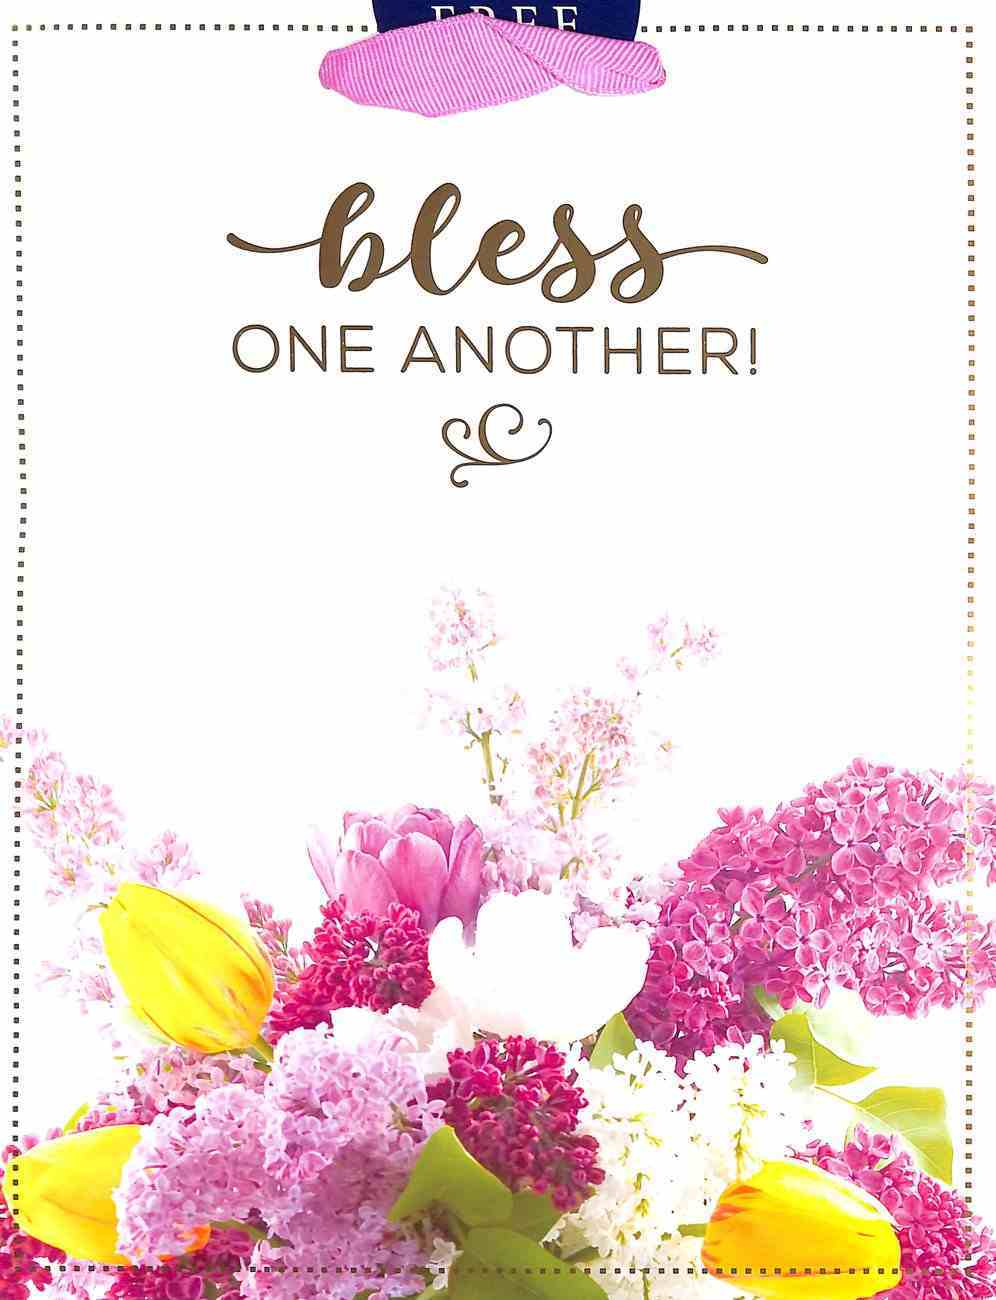 Gift Bag Medium: Bless One Another Bouquet (Incl Two Sheets Tissue Paper & Gift Tag) Stationery